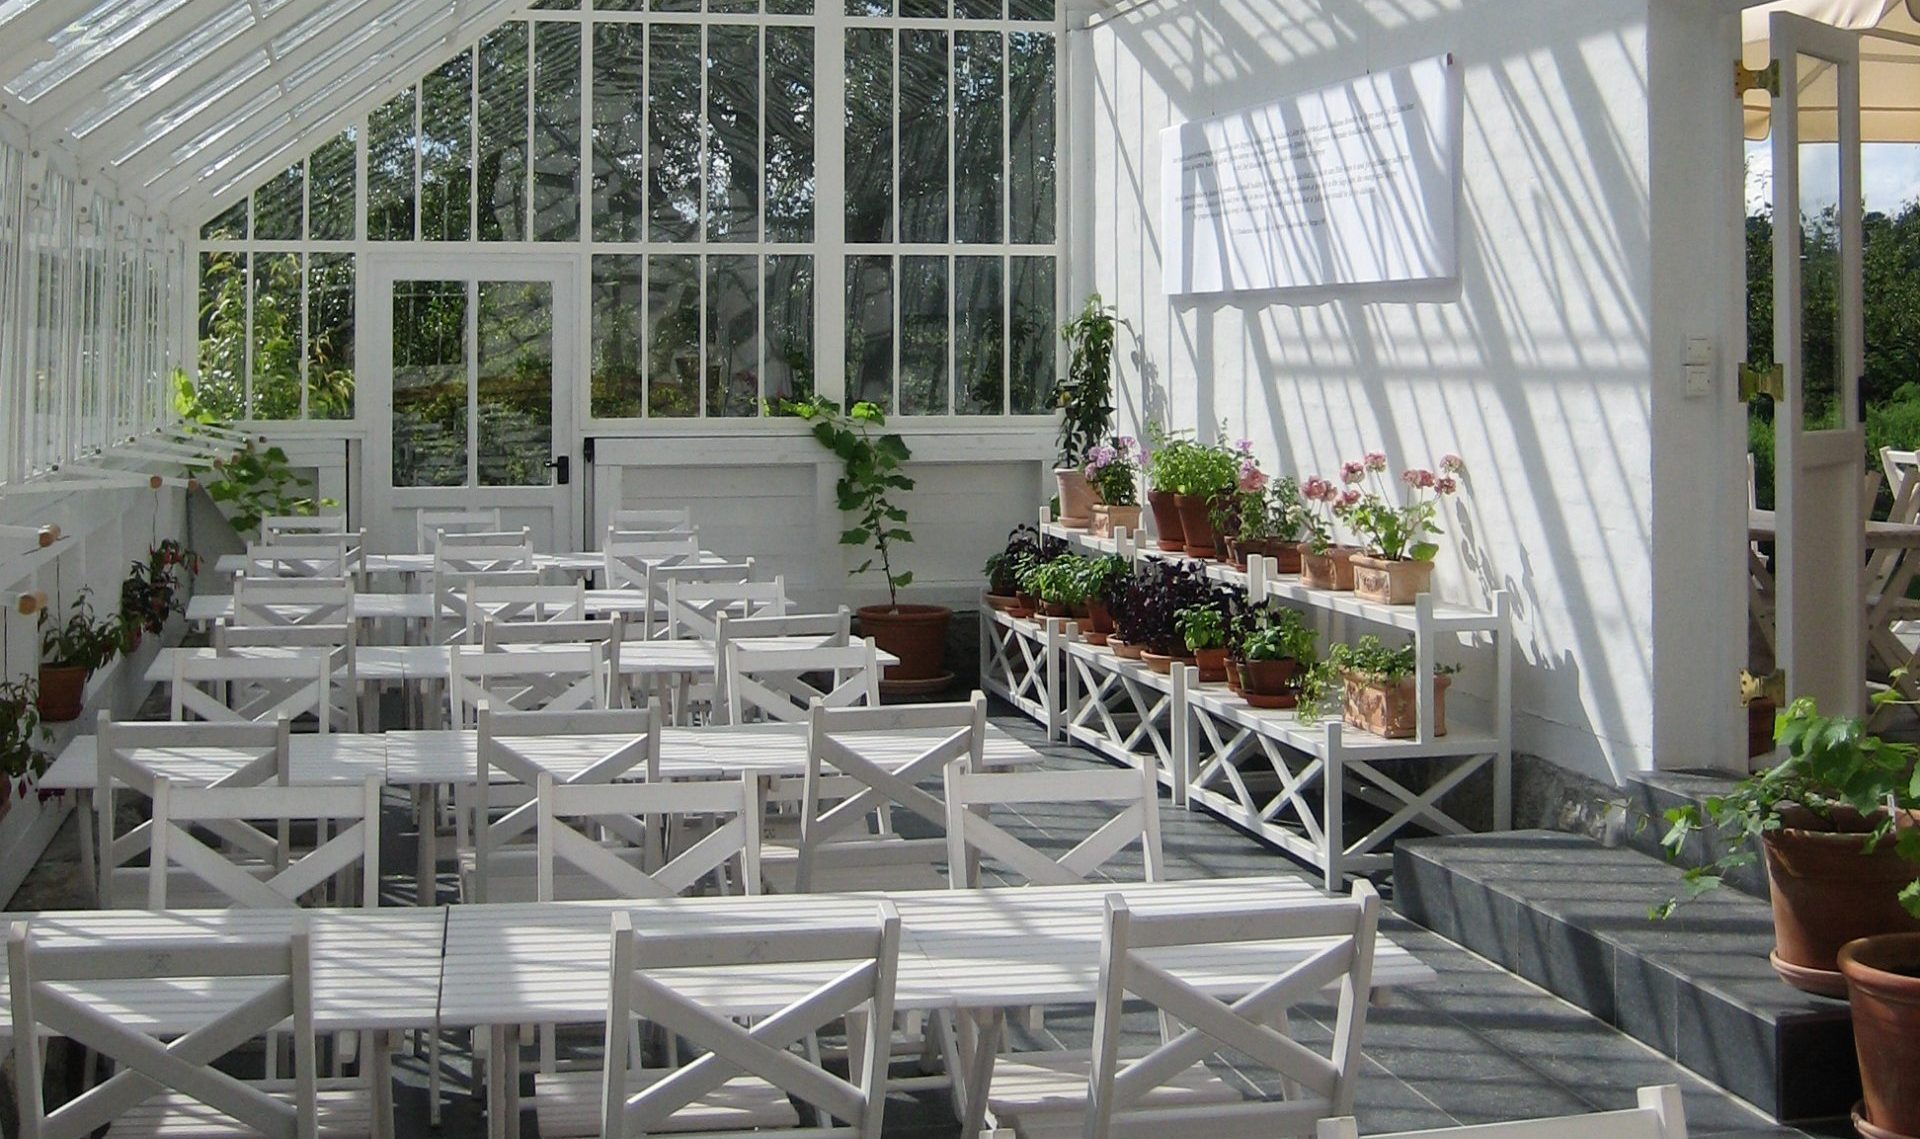 It is also possible to sit in the greenhouse.